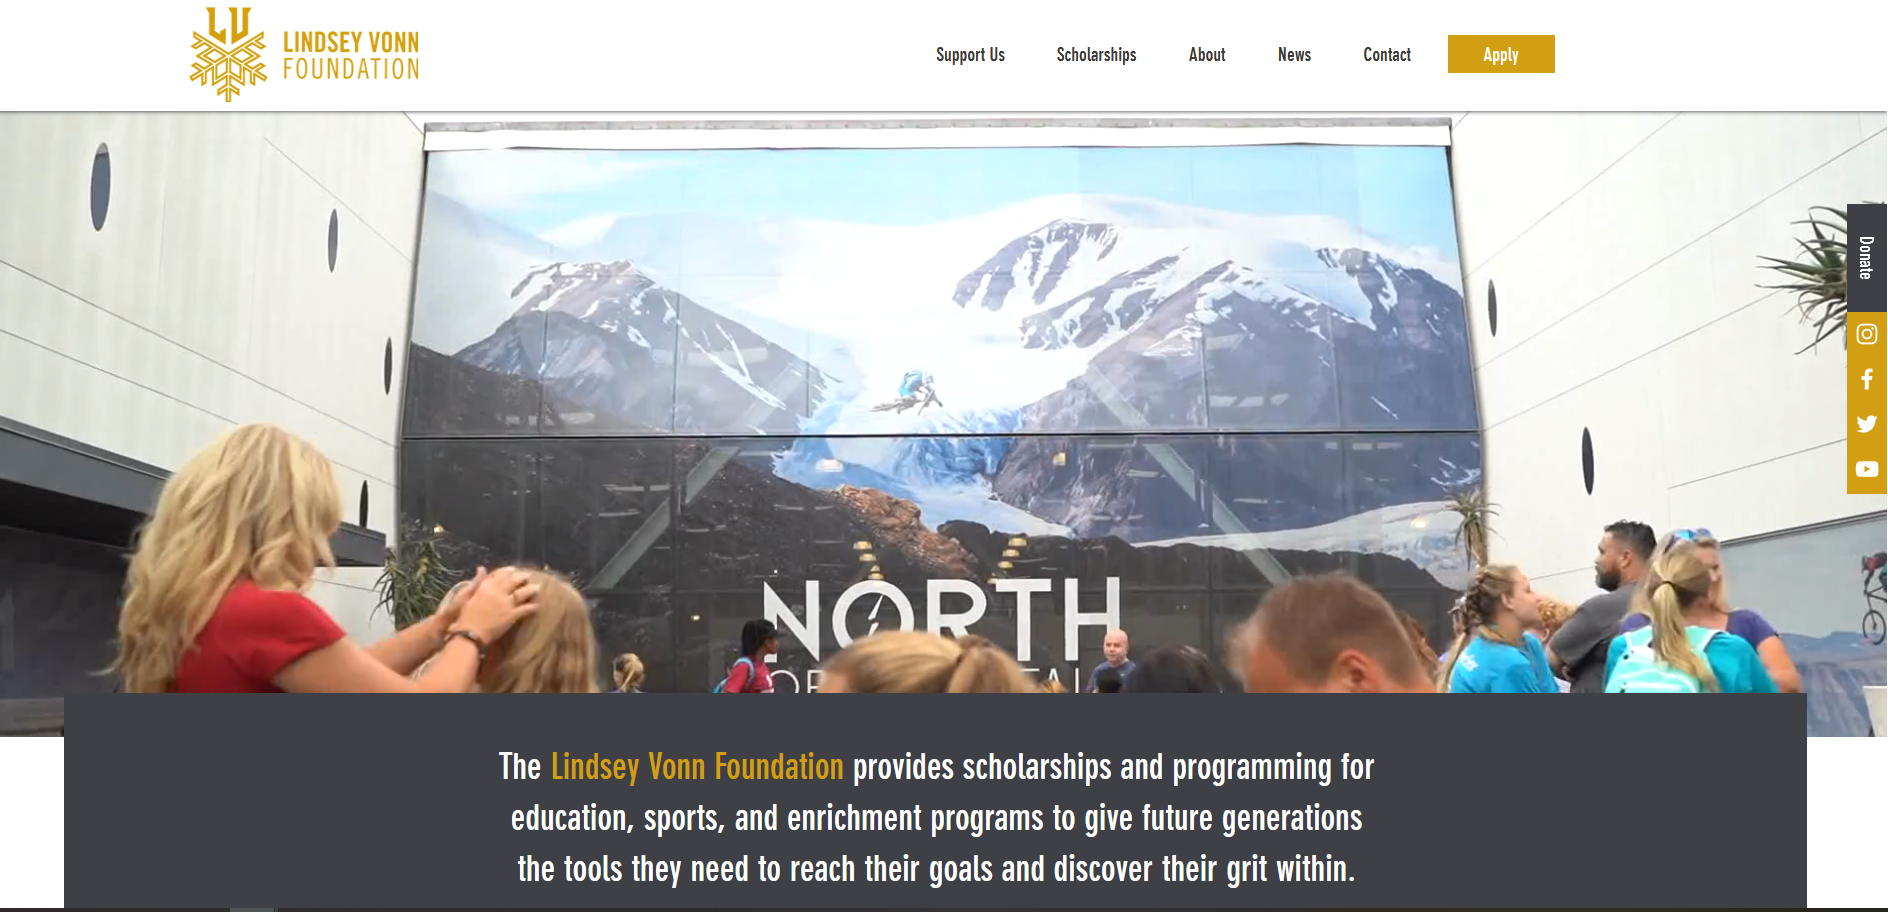 Lindsey Vonn Foundation website.png